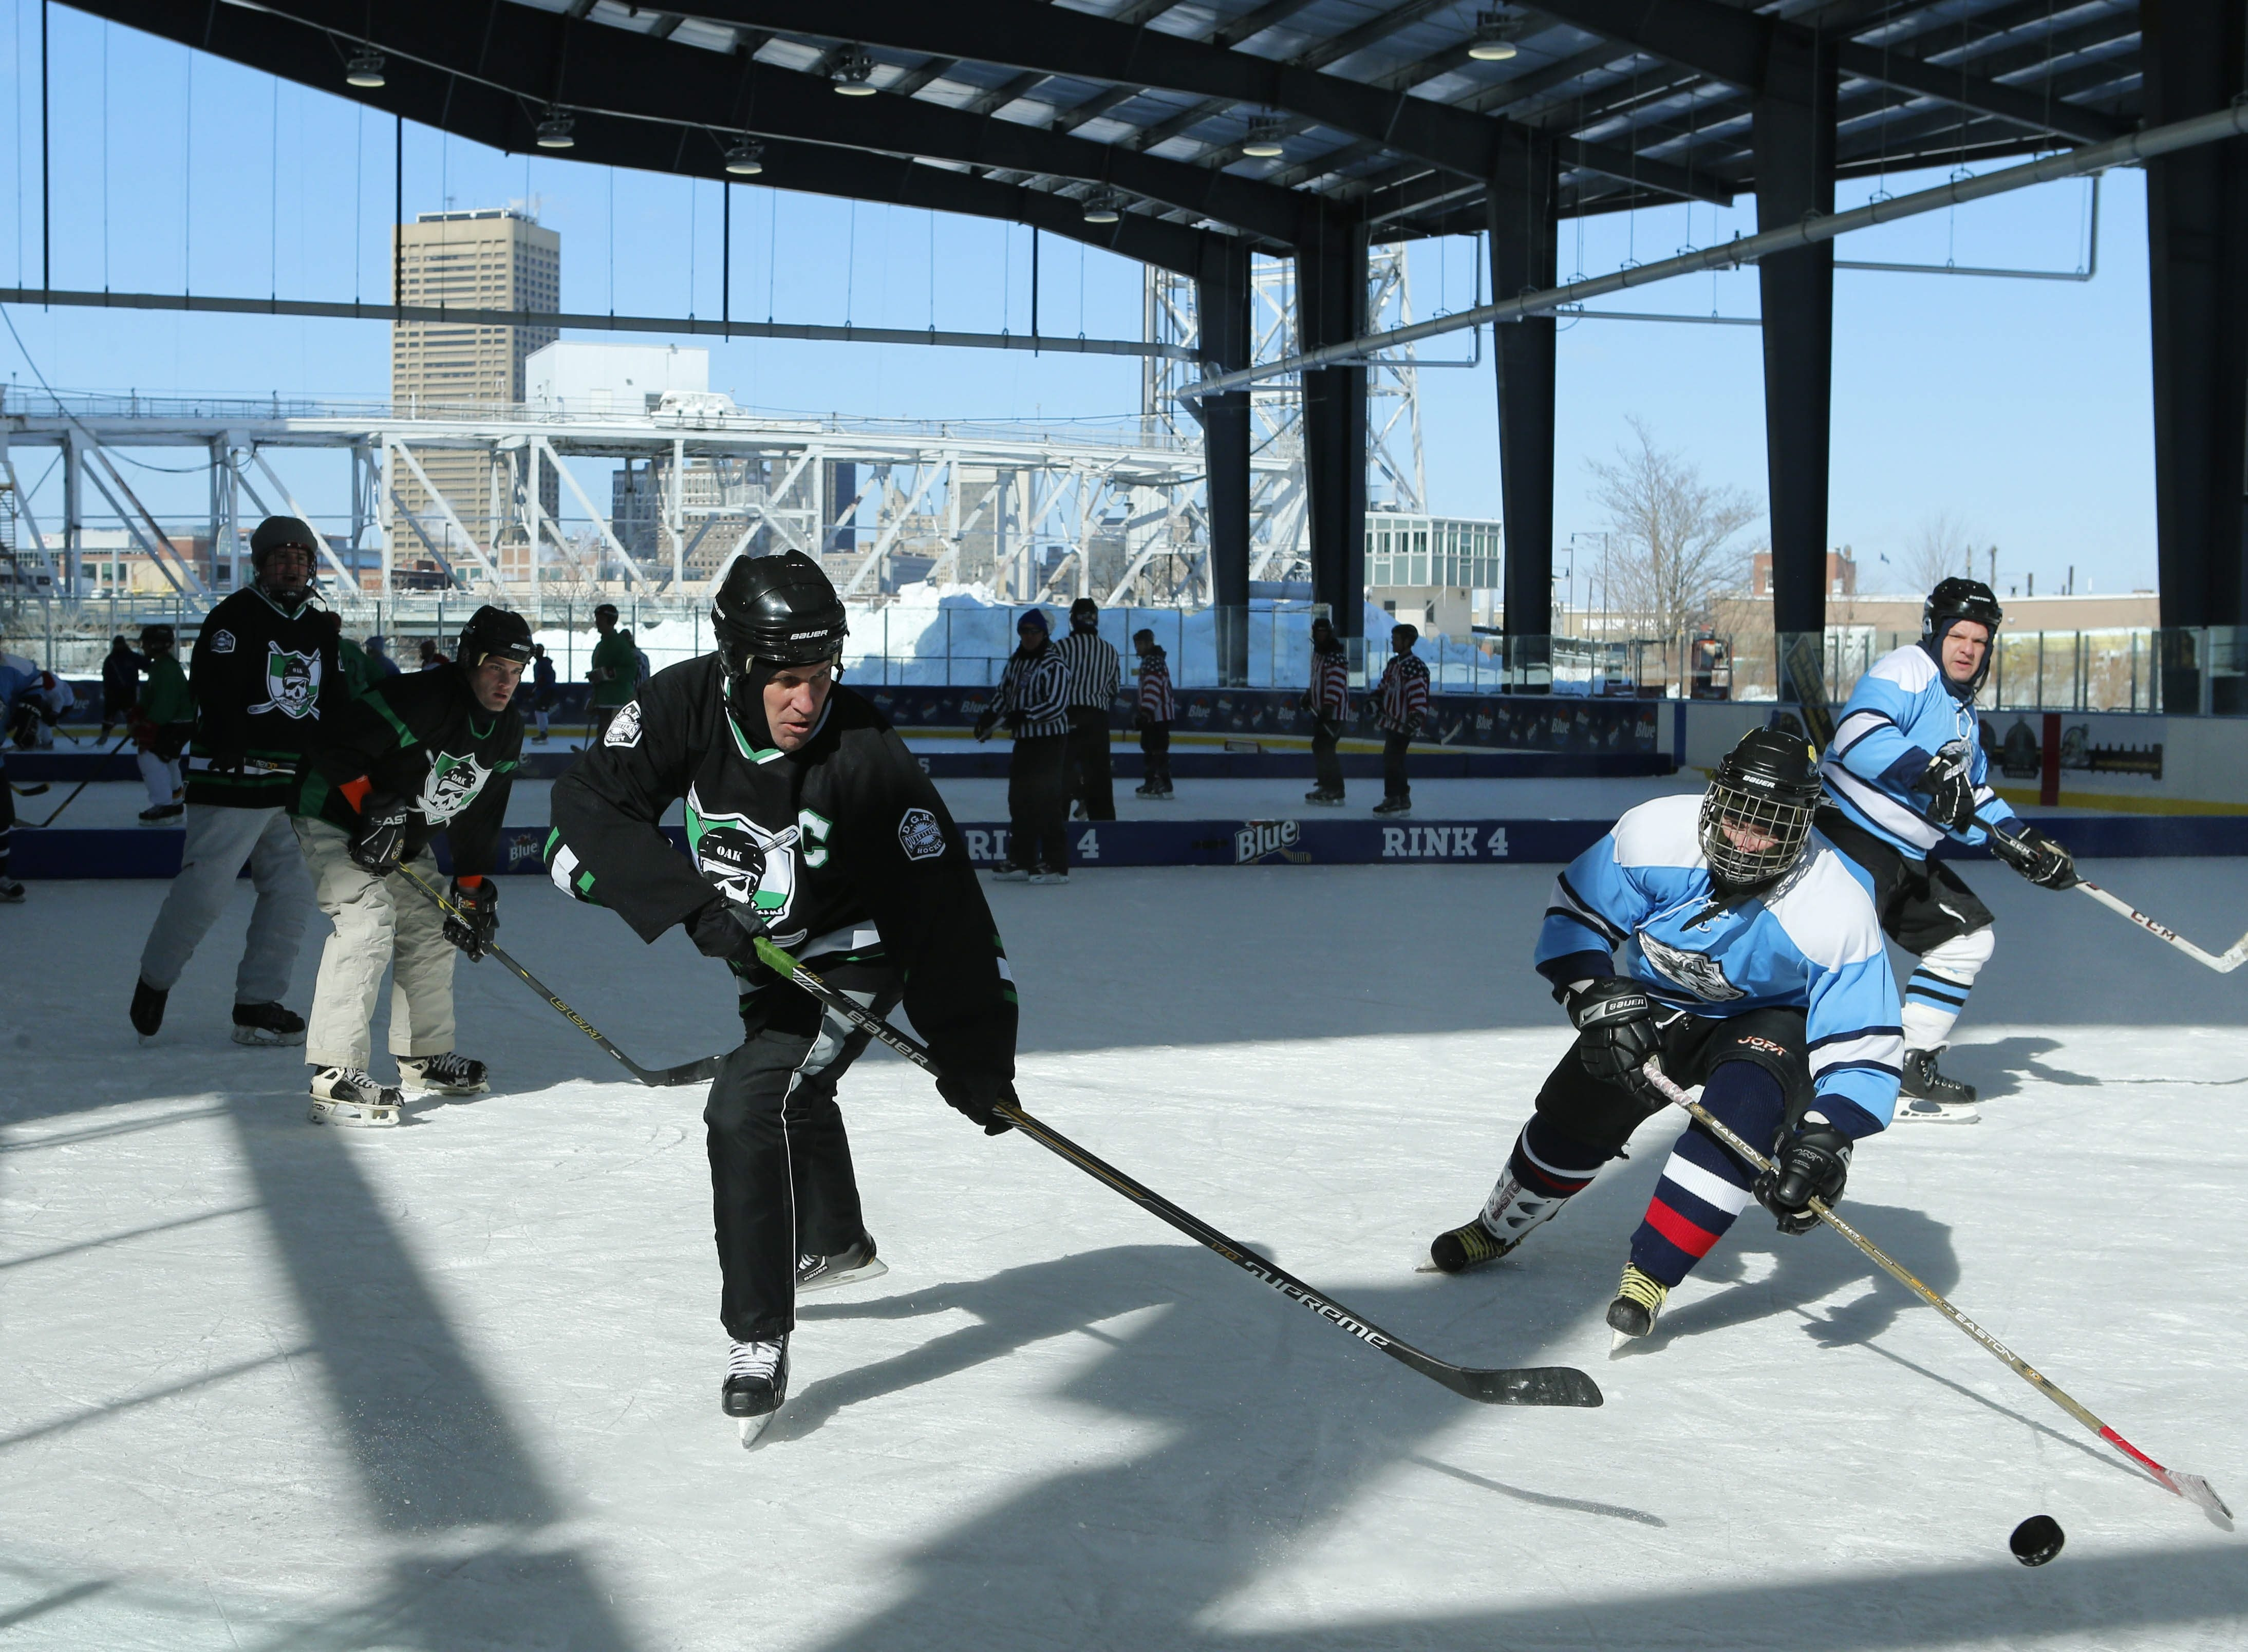 The 2016 edition of the Labatt Blue Pond Hockey Tournament runs from Feb. 19 to 21 at RiverWorks on Ganson Street.